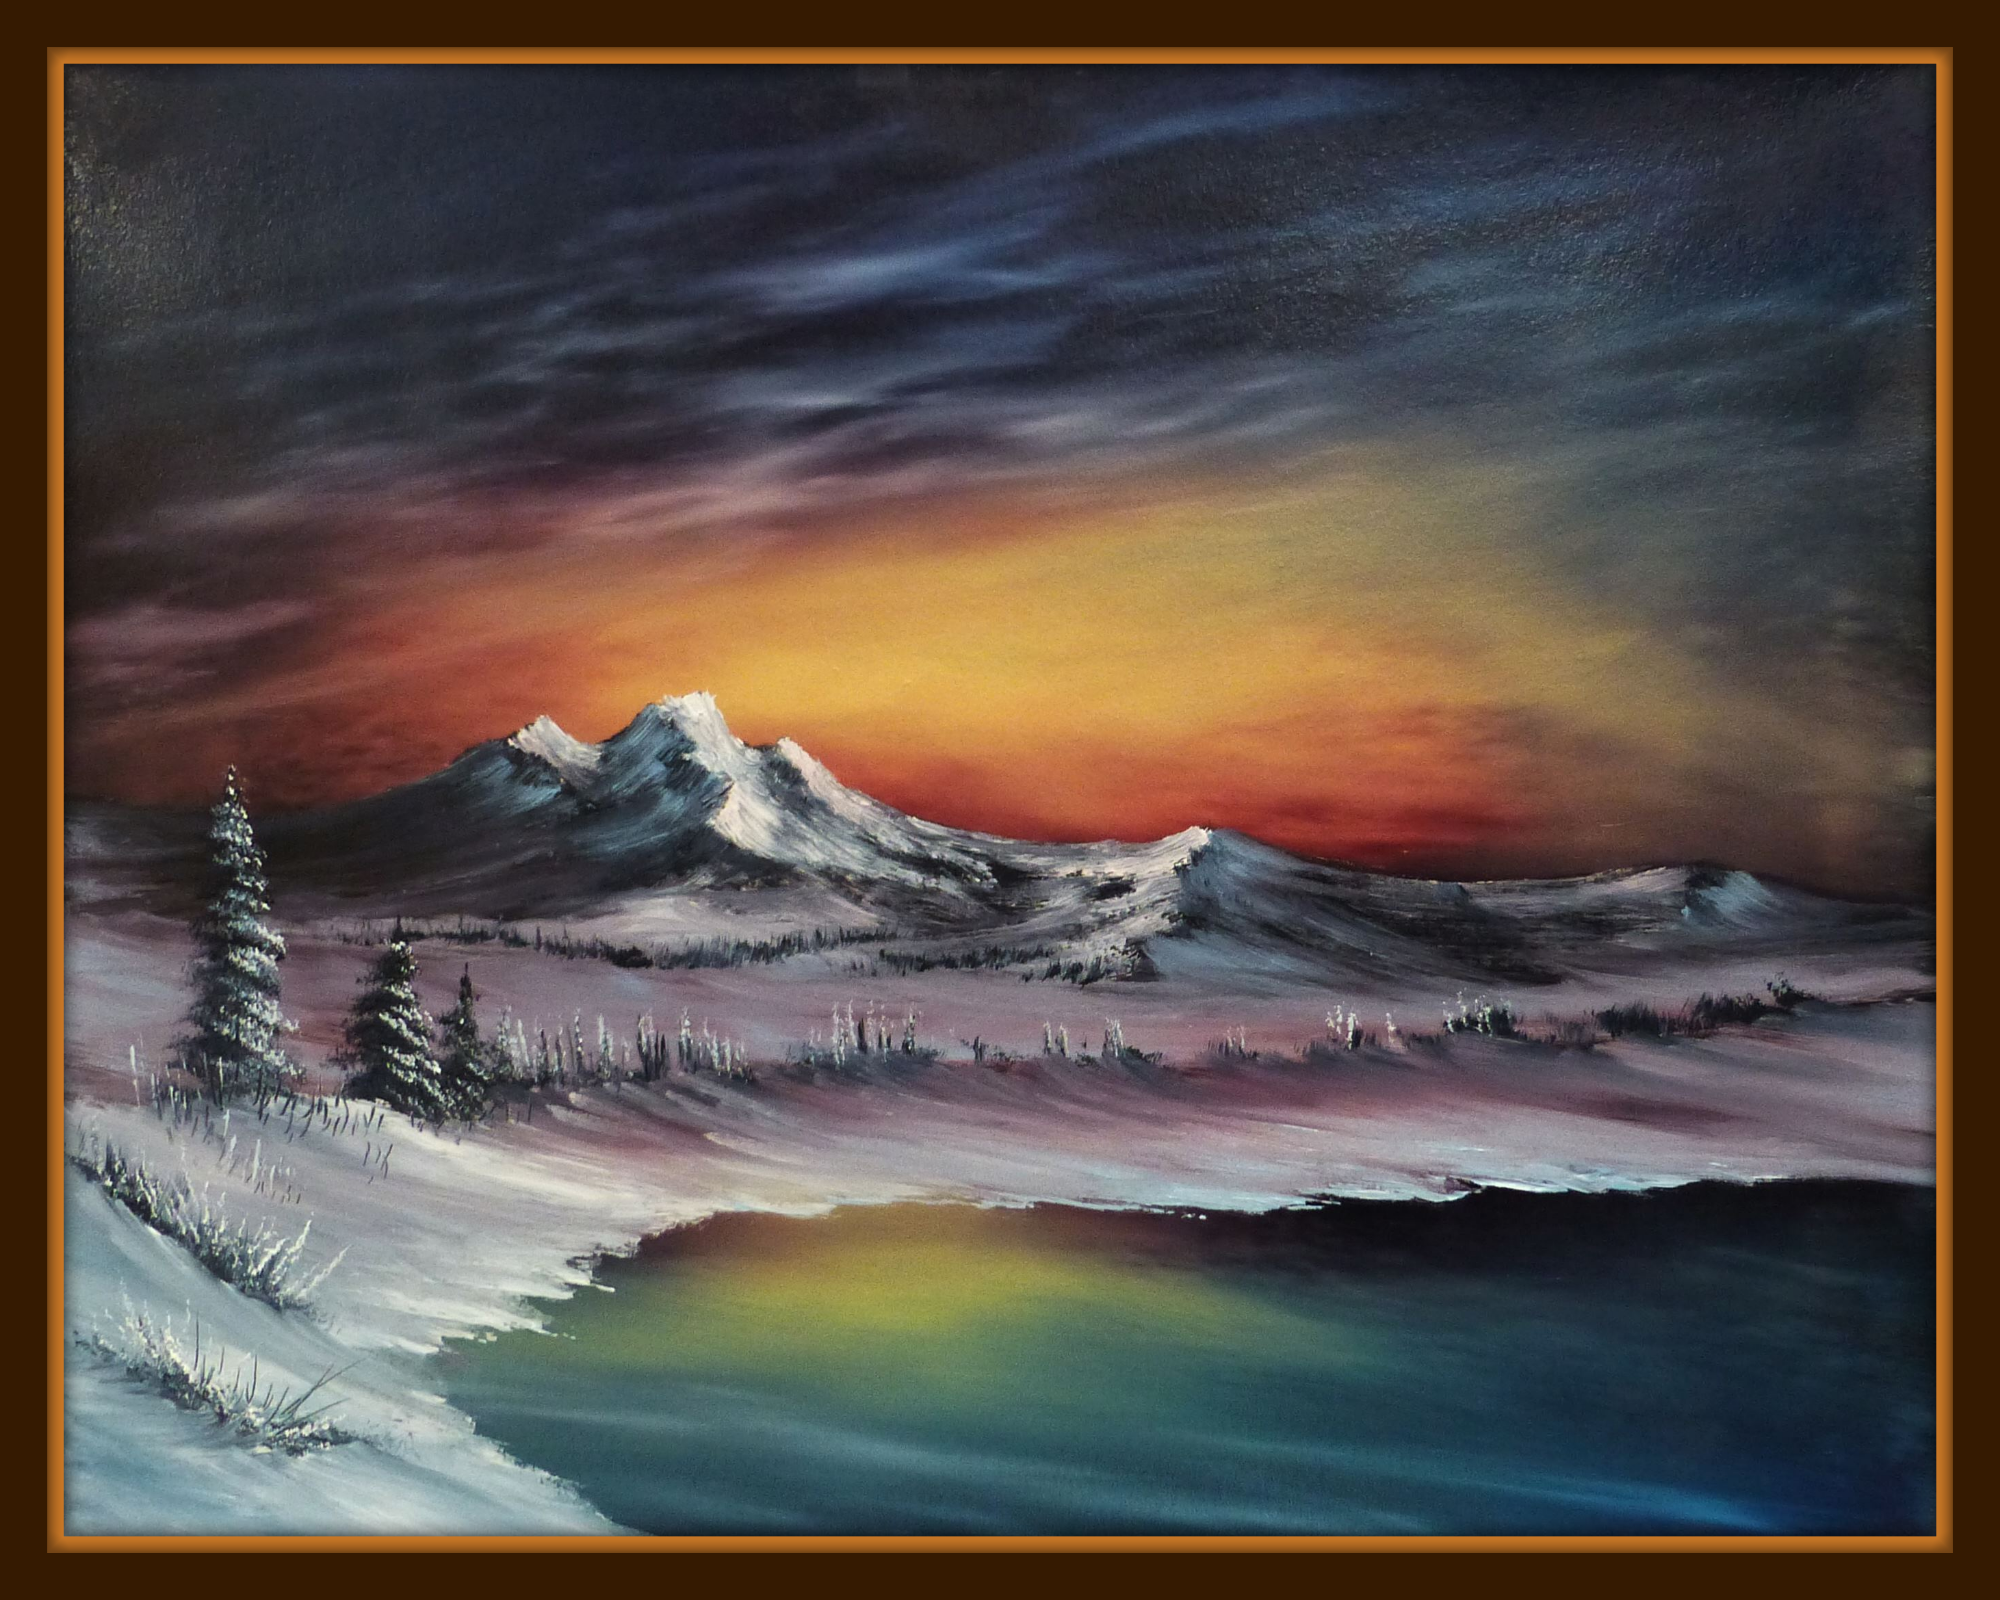 'Sunrise over the Mountain' an atmospheric sunrise painting.